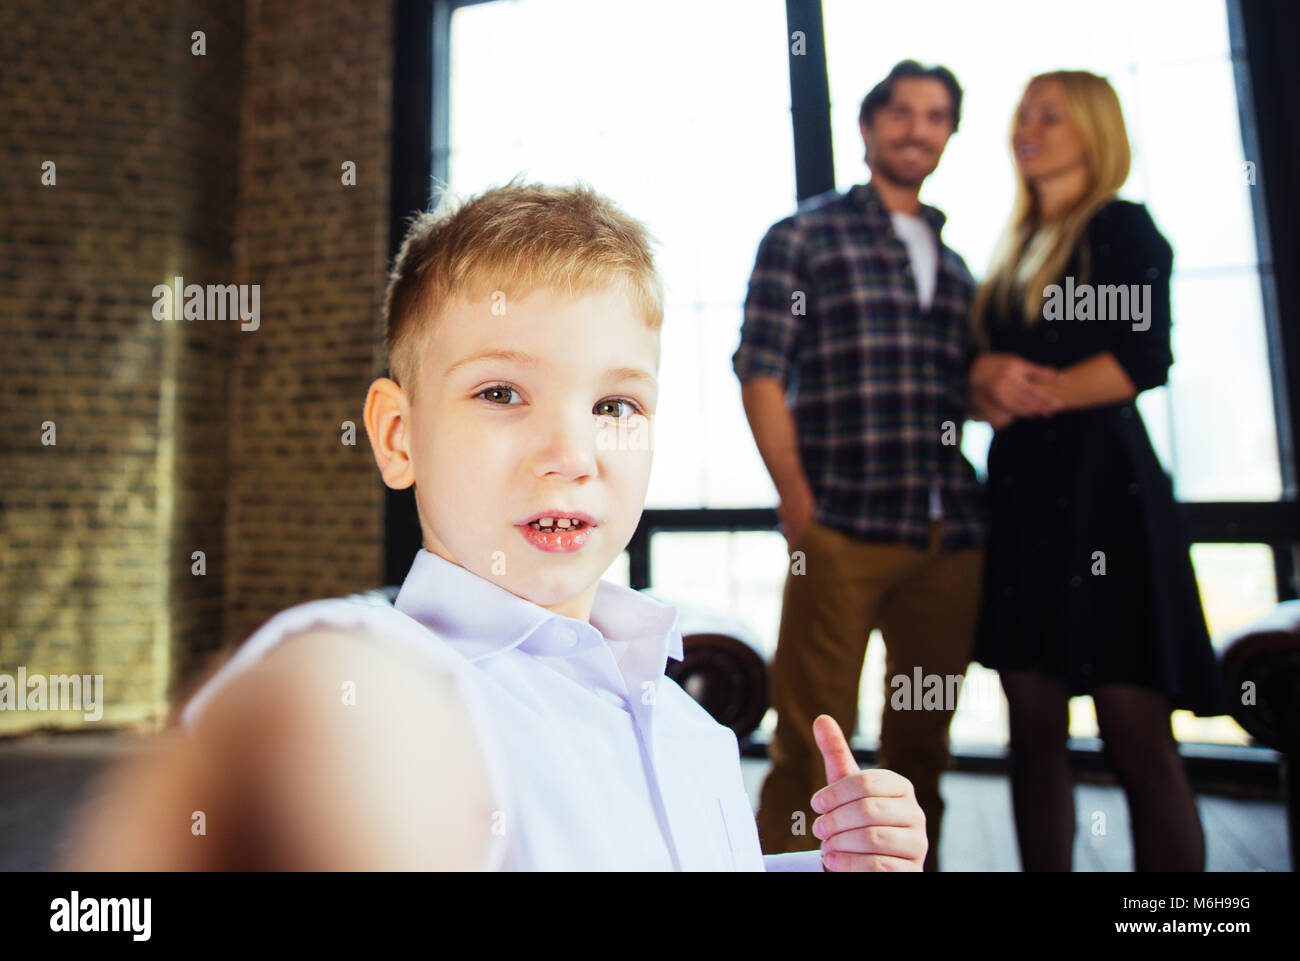 Family home portrait. Parents and son spending time together Stock Photo